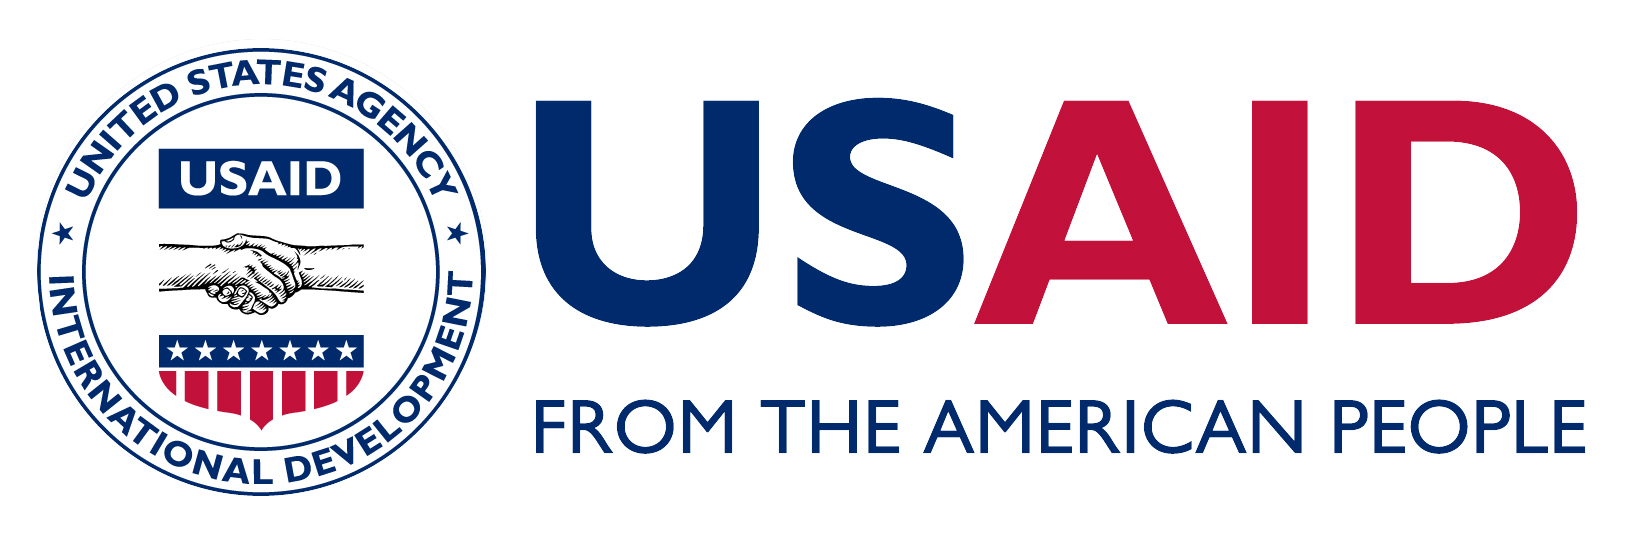 usaid_logo_english.jpg